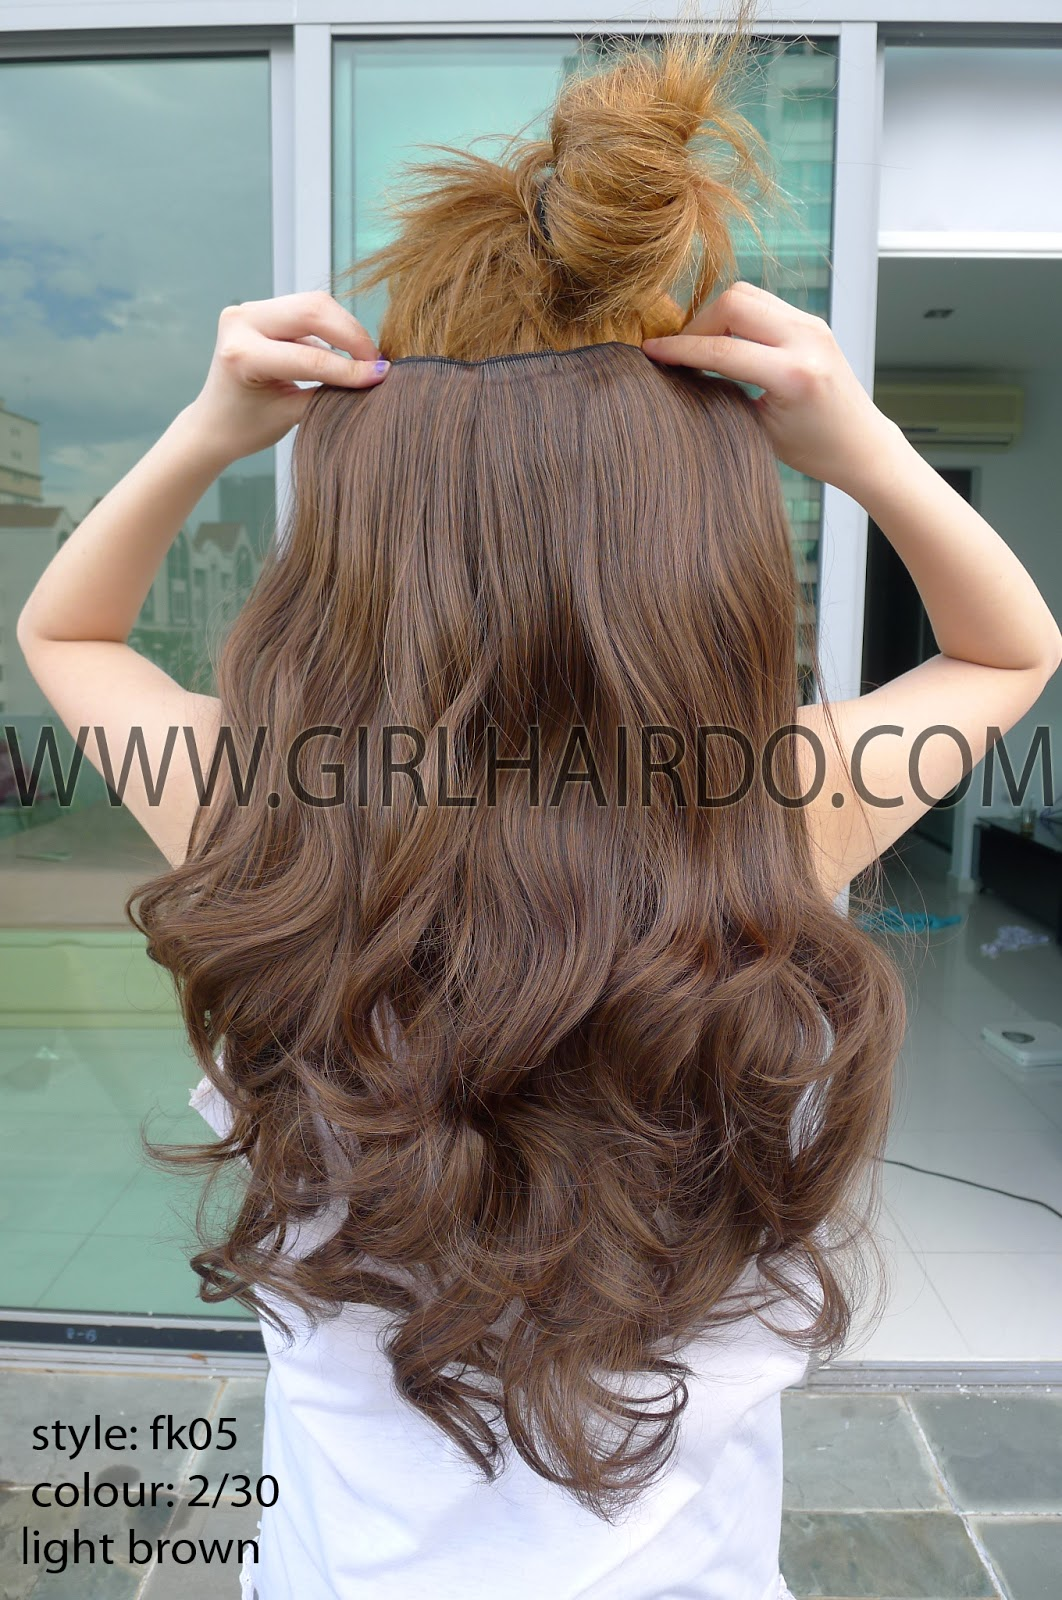 http://1.bp.blogspot.com/-vW6wVvcNQIk/UjBRvVYERTI/AAAAAAAAOYs/aYr3e4Dkzb8/s1600/P1100805+girlhairdo+light+brown.jpg